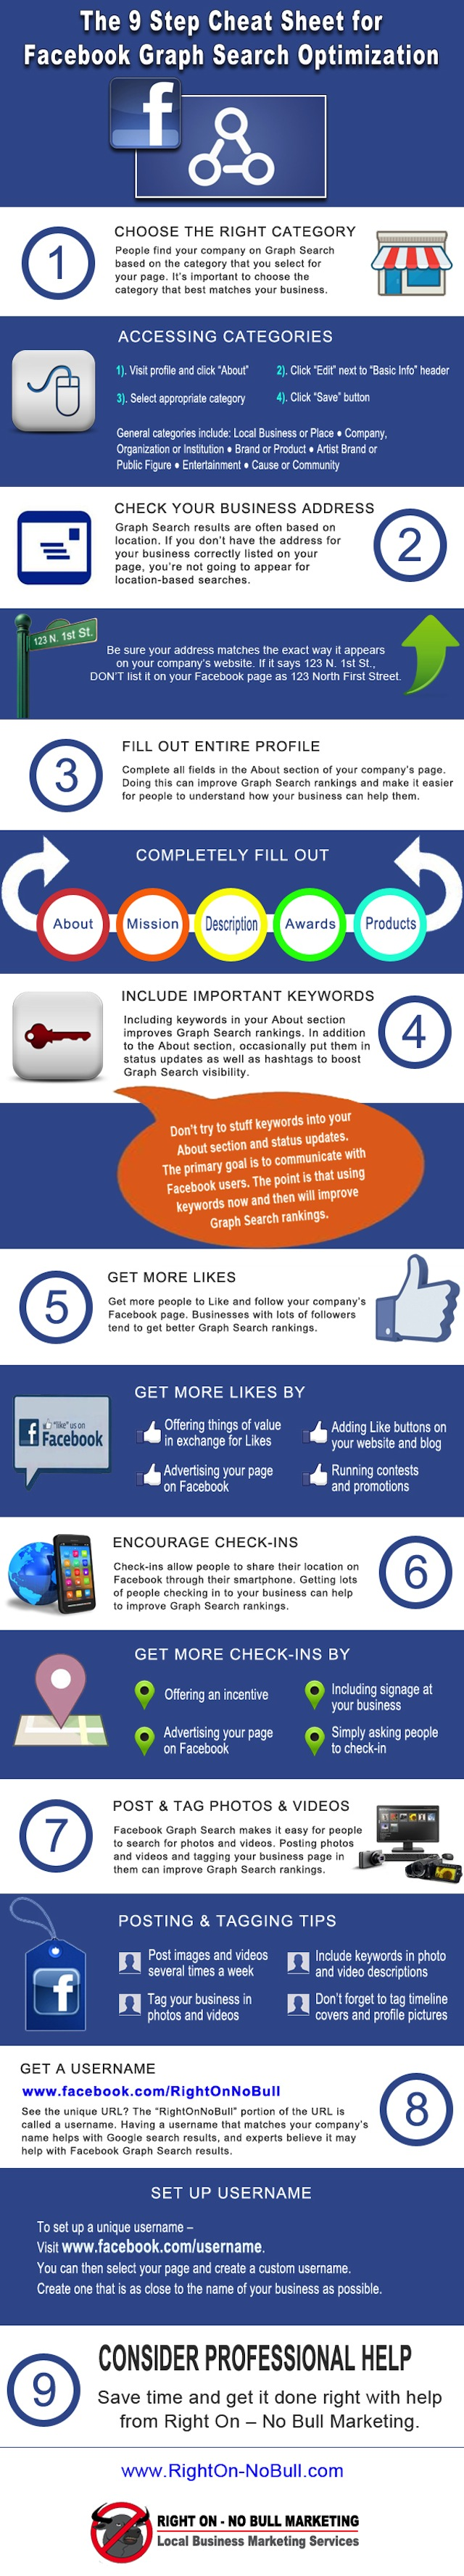 How to Optimize Your Facebook Page for Graph Search [Infographic]